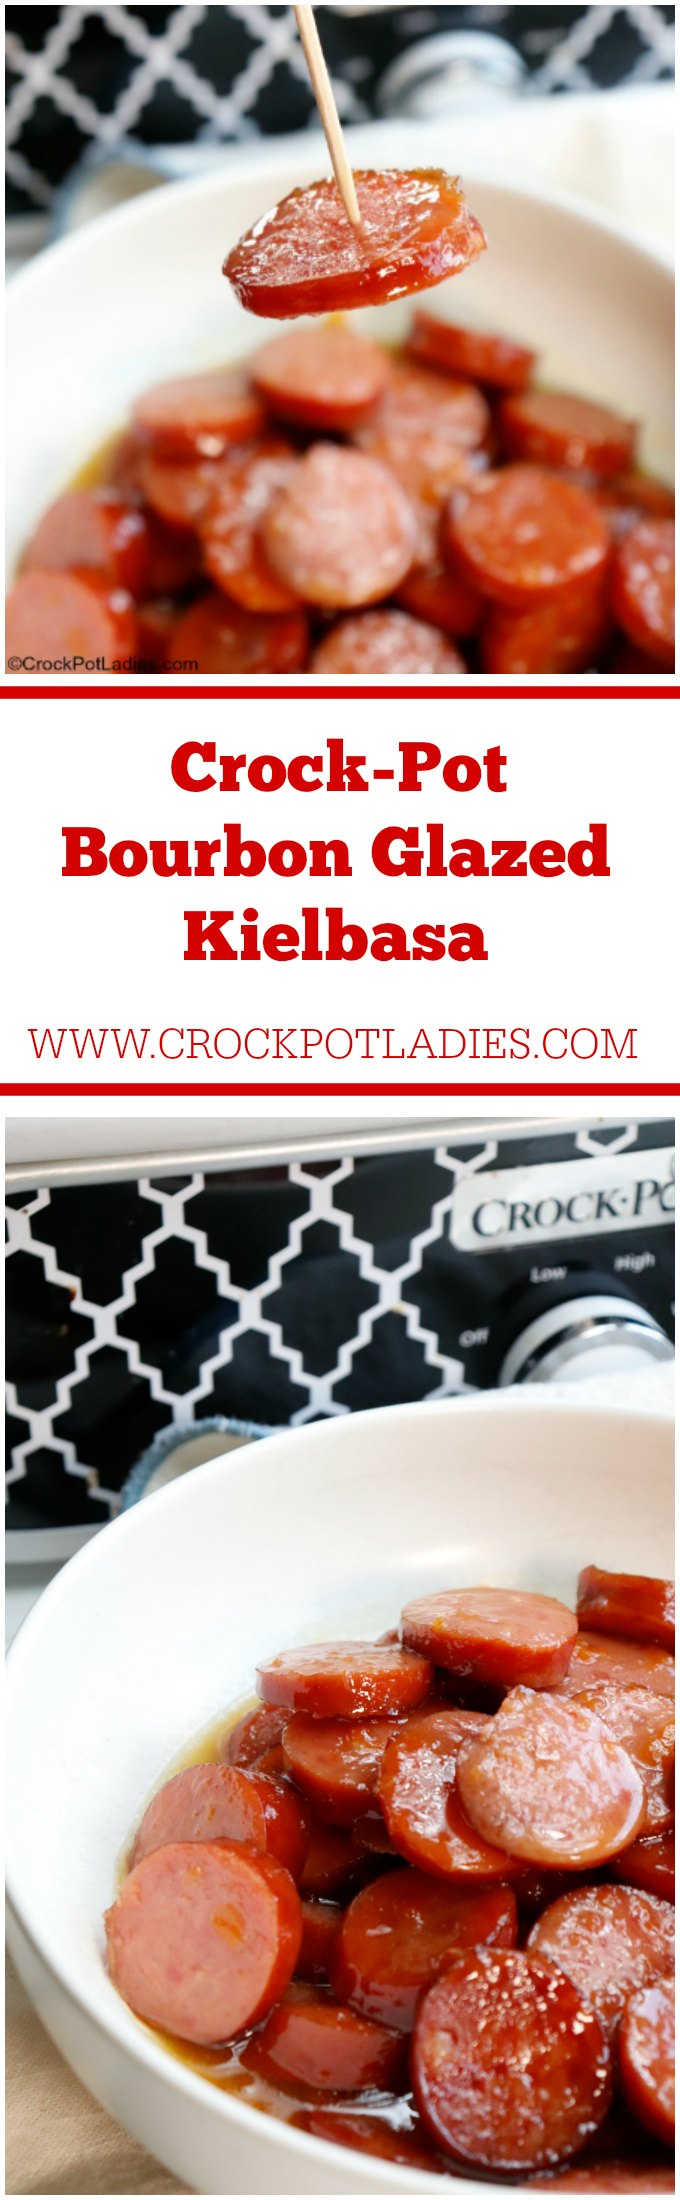 Crock-Pot Bourbon Glazed Kielbasa